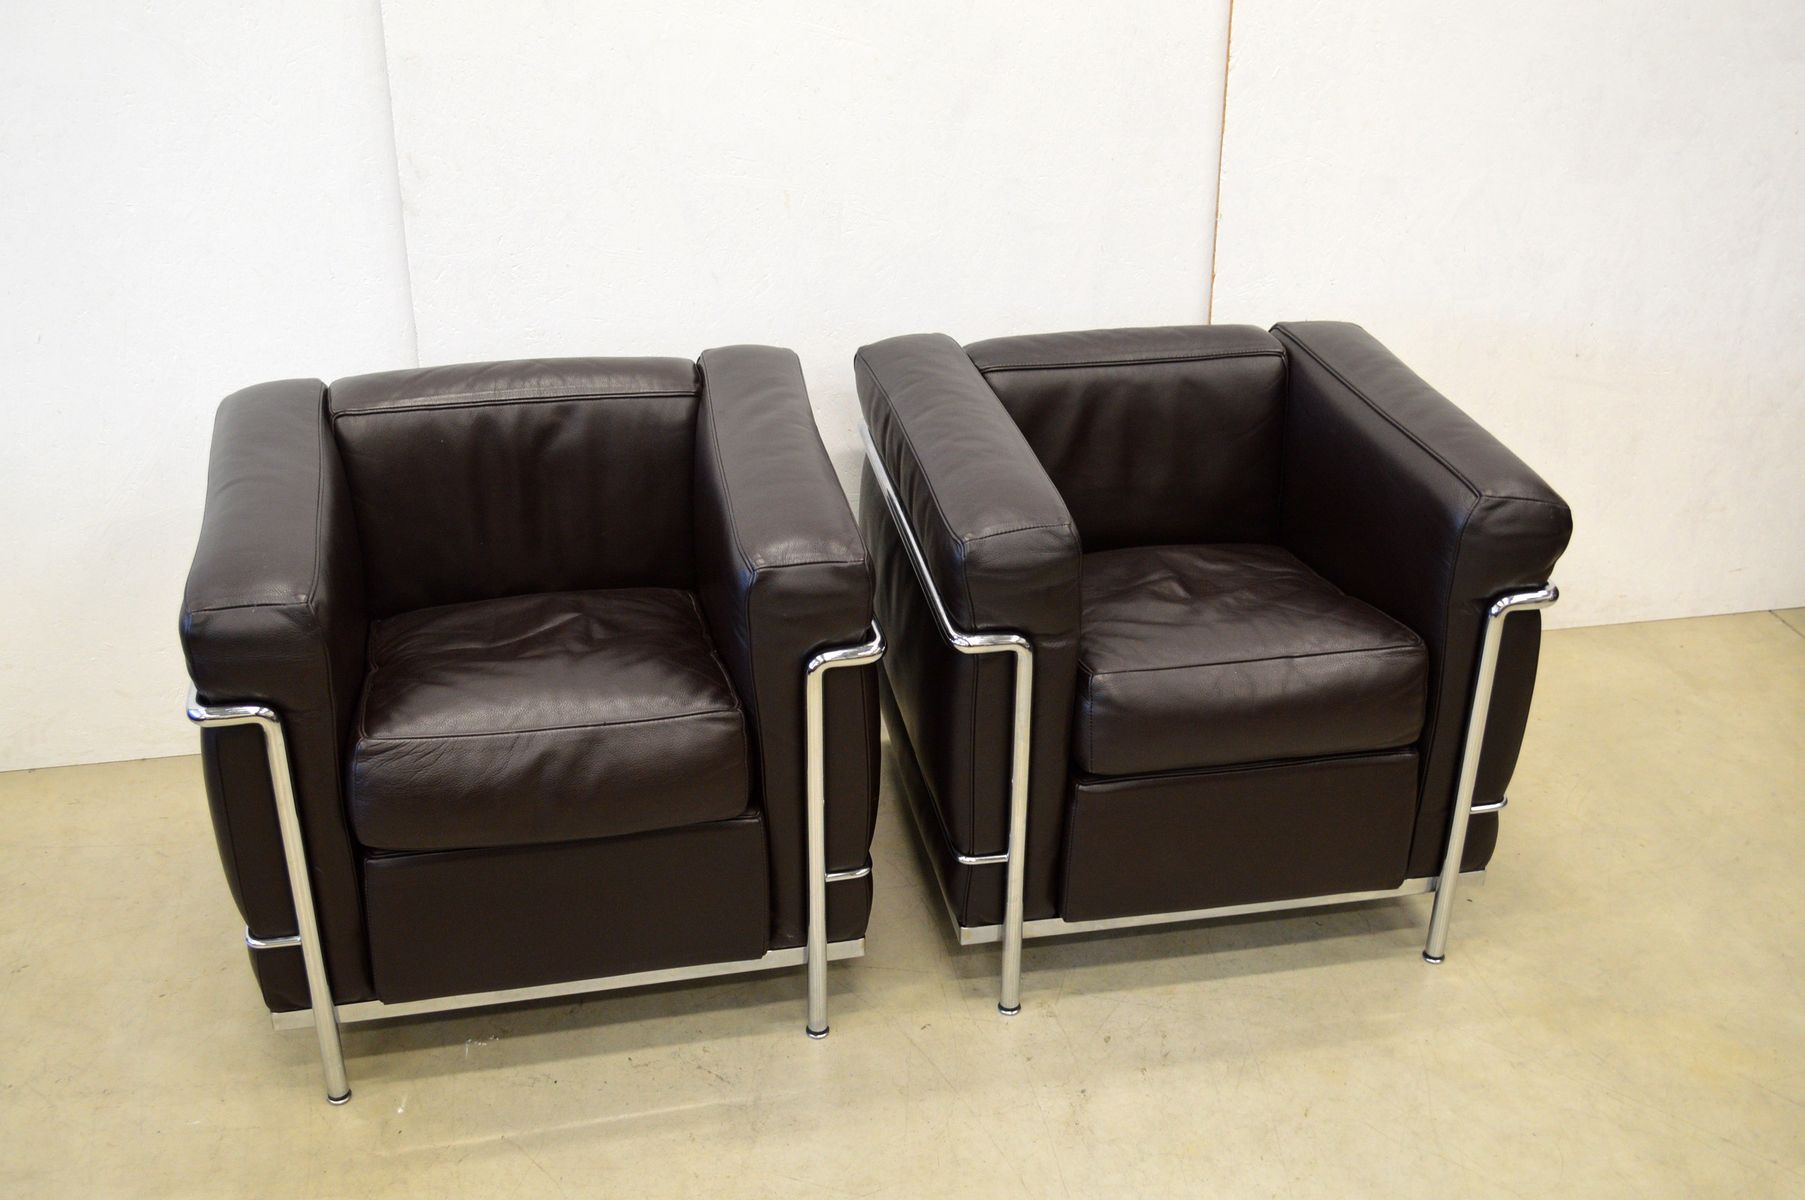 set de salon lc2 par le corbusier pour cassina 1980s en vente sur pamono. Black Bedroom Furniture Sets. Home Design Ideas